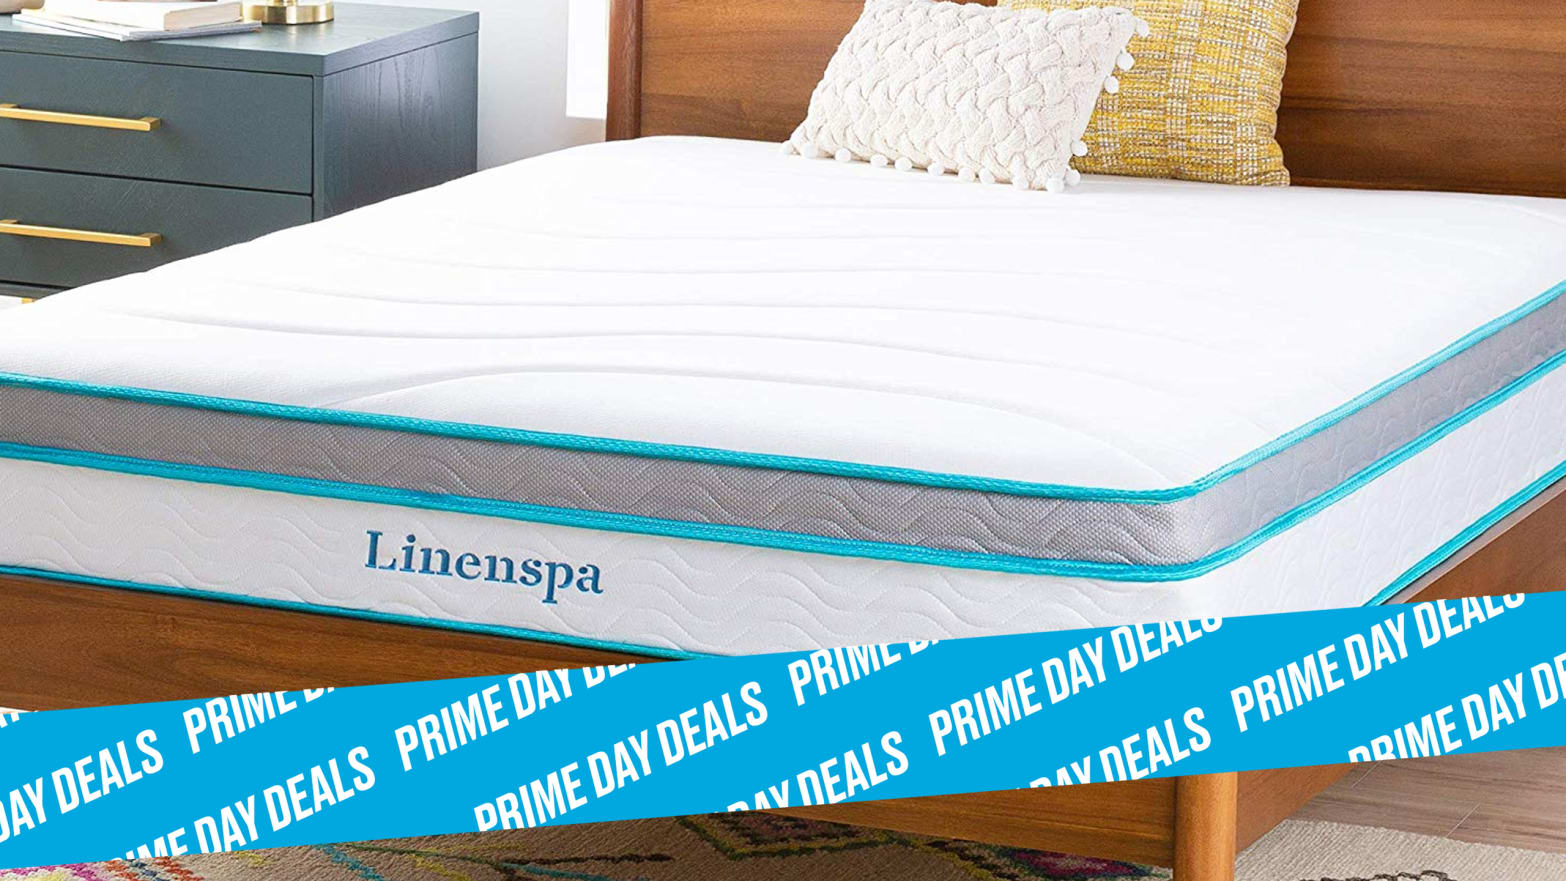 The Linenspa 10 Inch Memory Foam Hybrid Mattress Is Under $250 for Prime Day